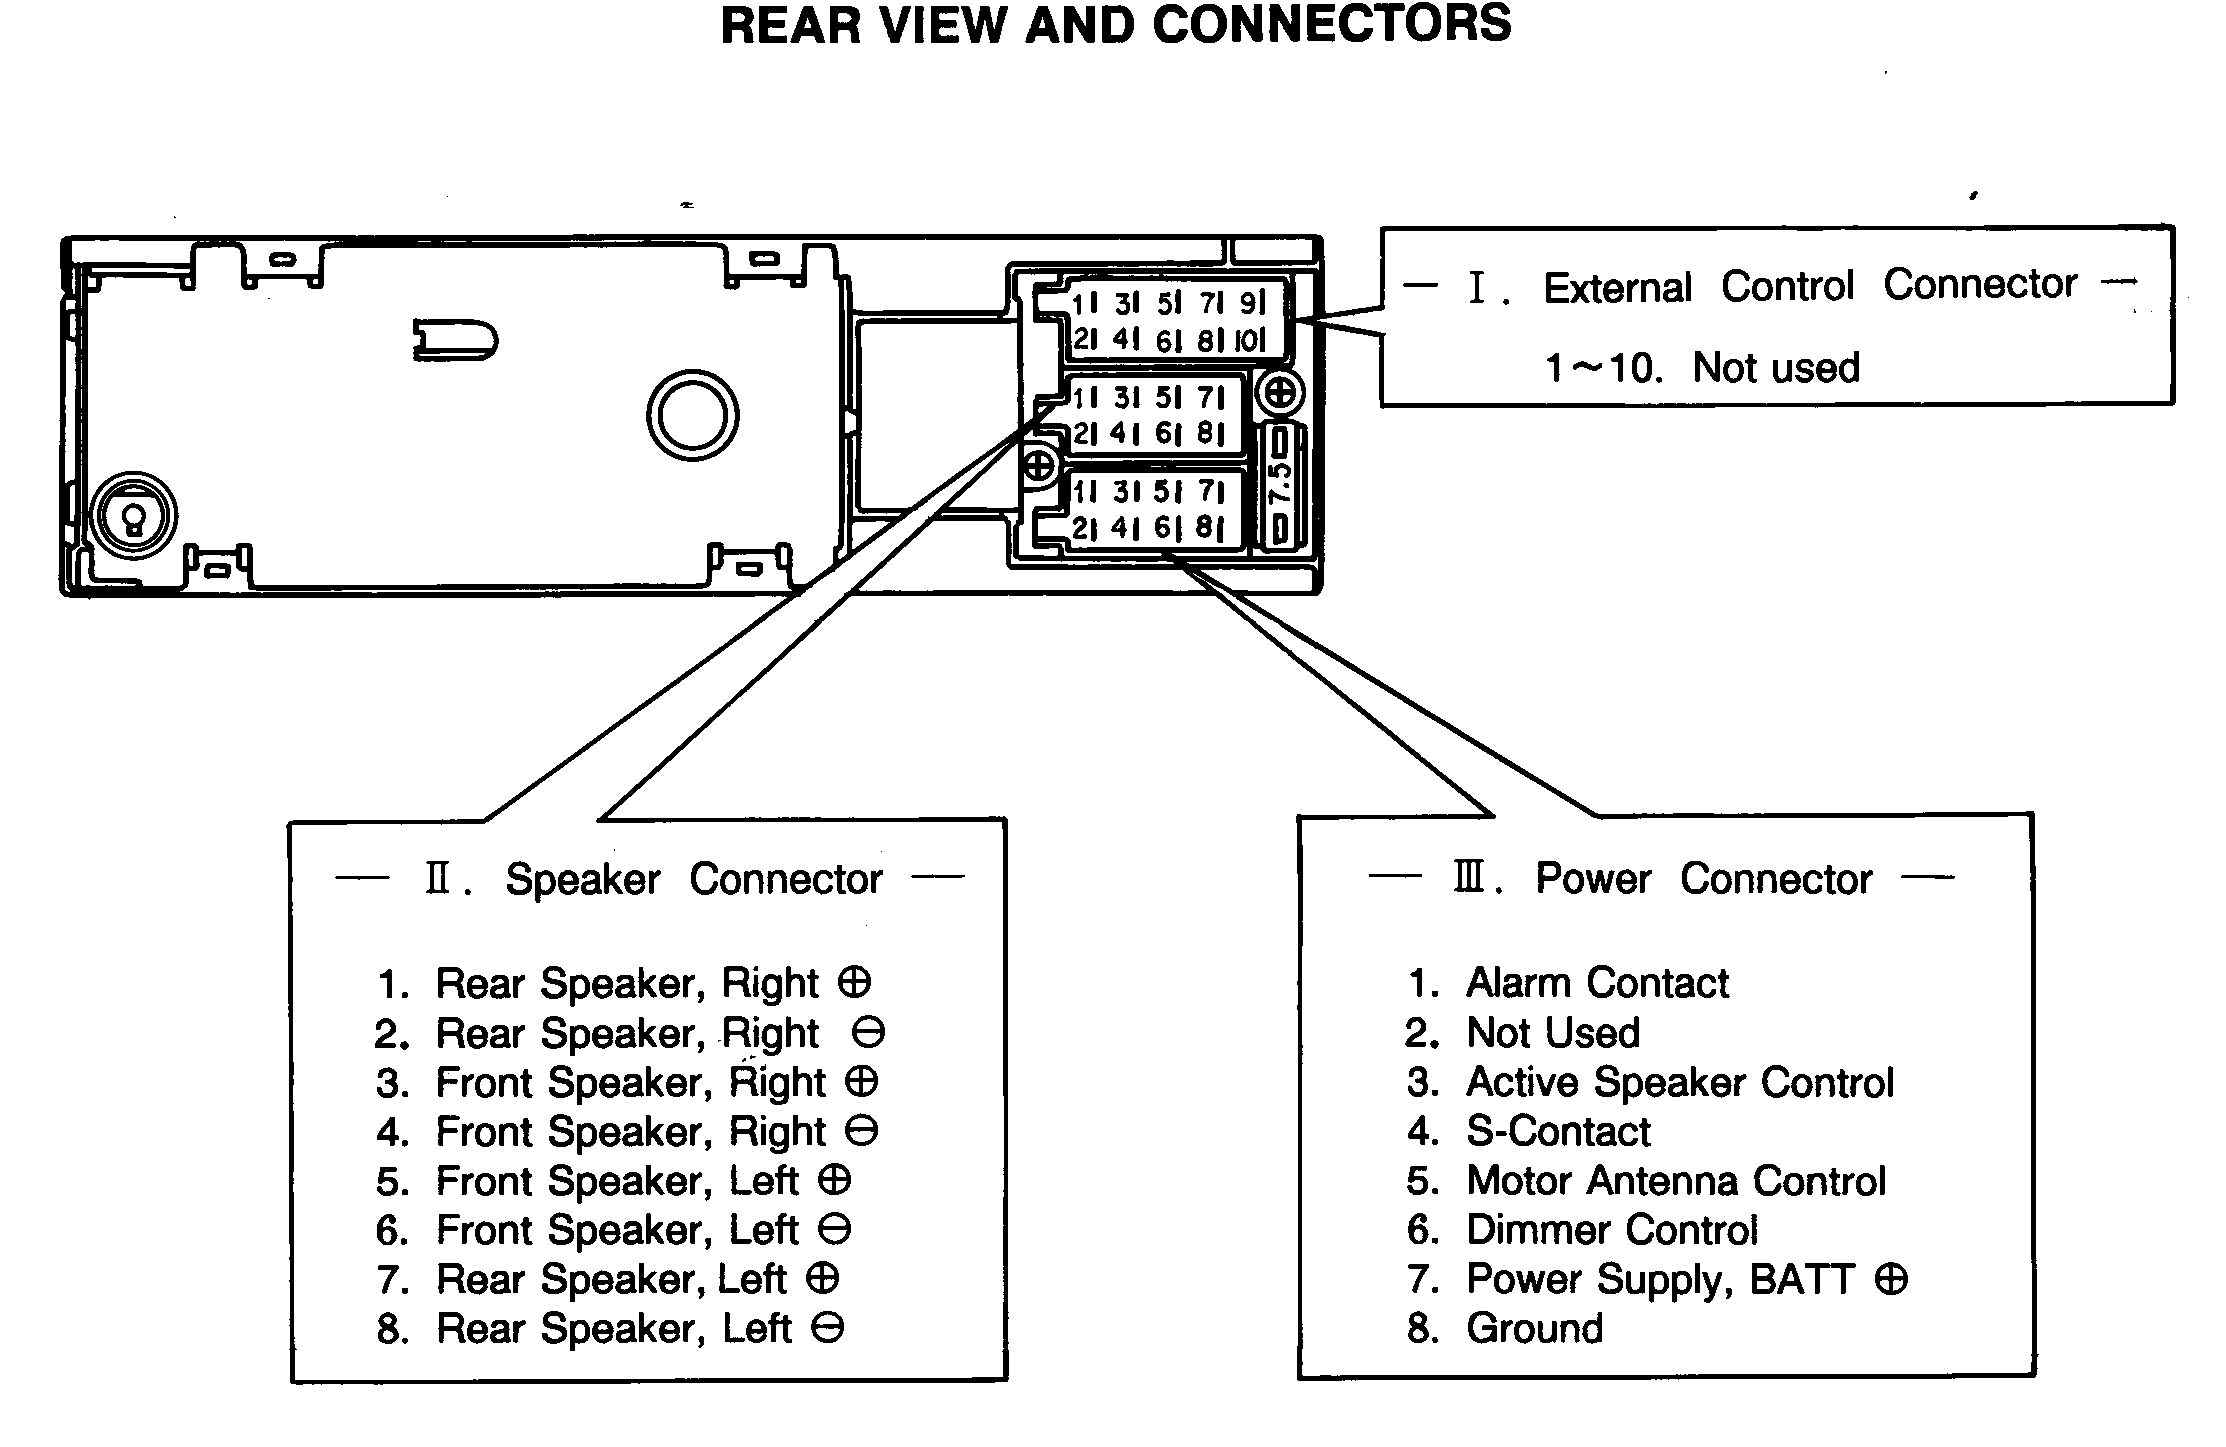 WireHarnessVW121401 car audio wire diagram codes volkswagen factory car stereo car radio wiring diagram at soozxer.org